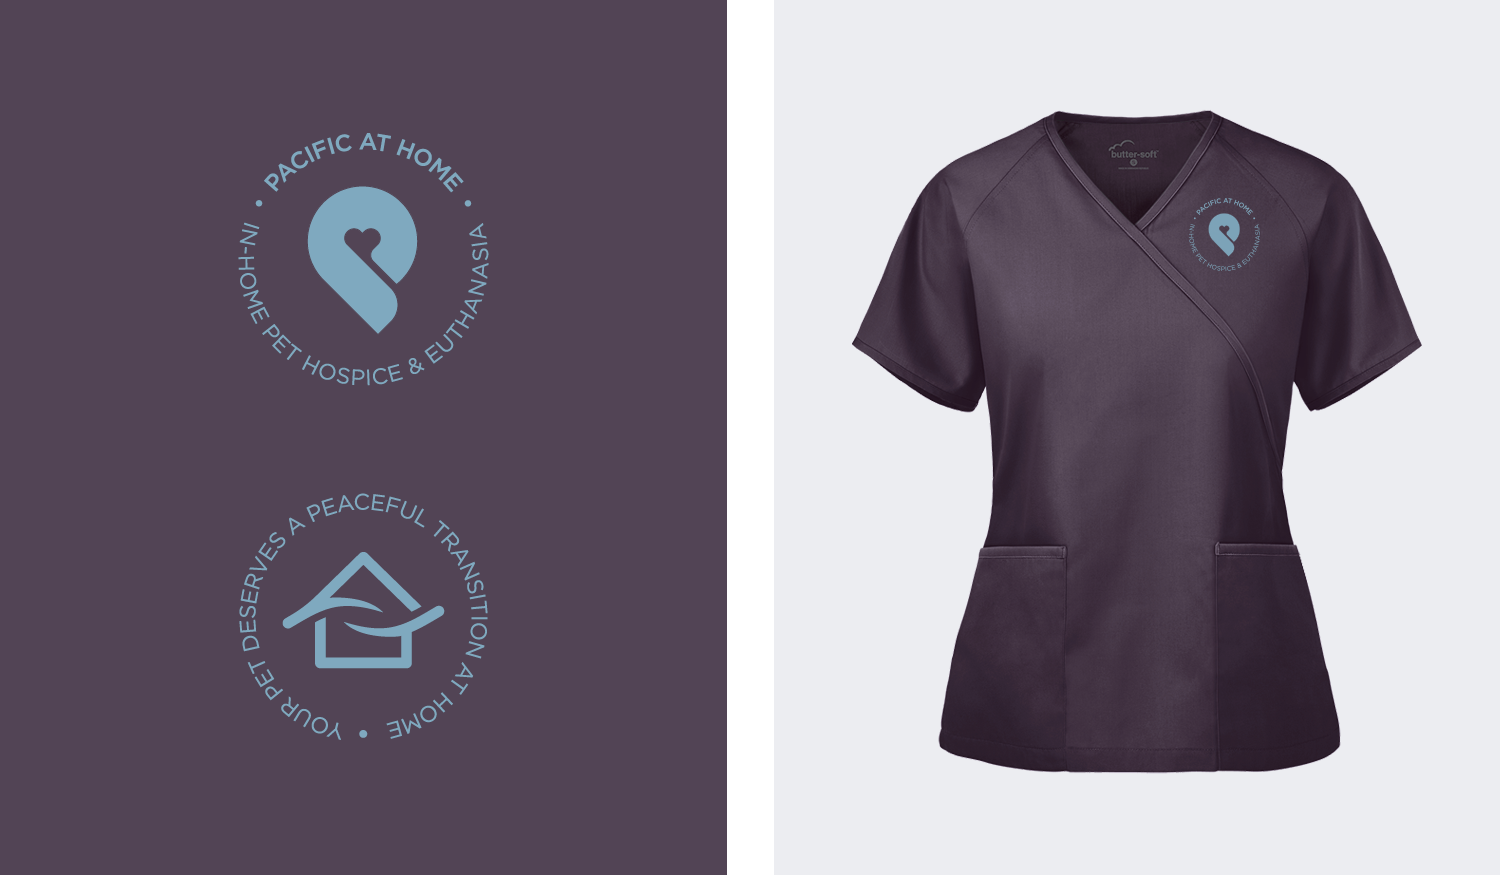 Pacific at Home visual identity secondary marks and medical apparel scrub top